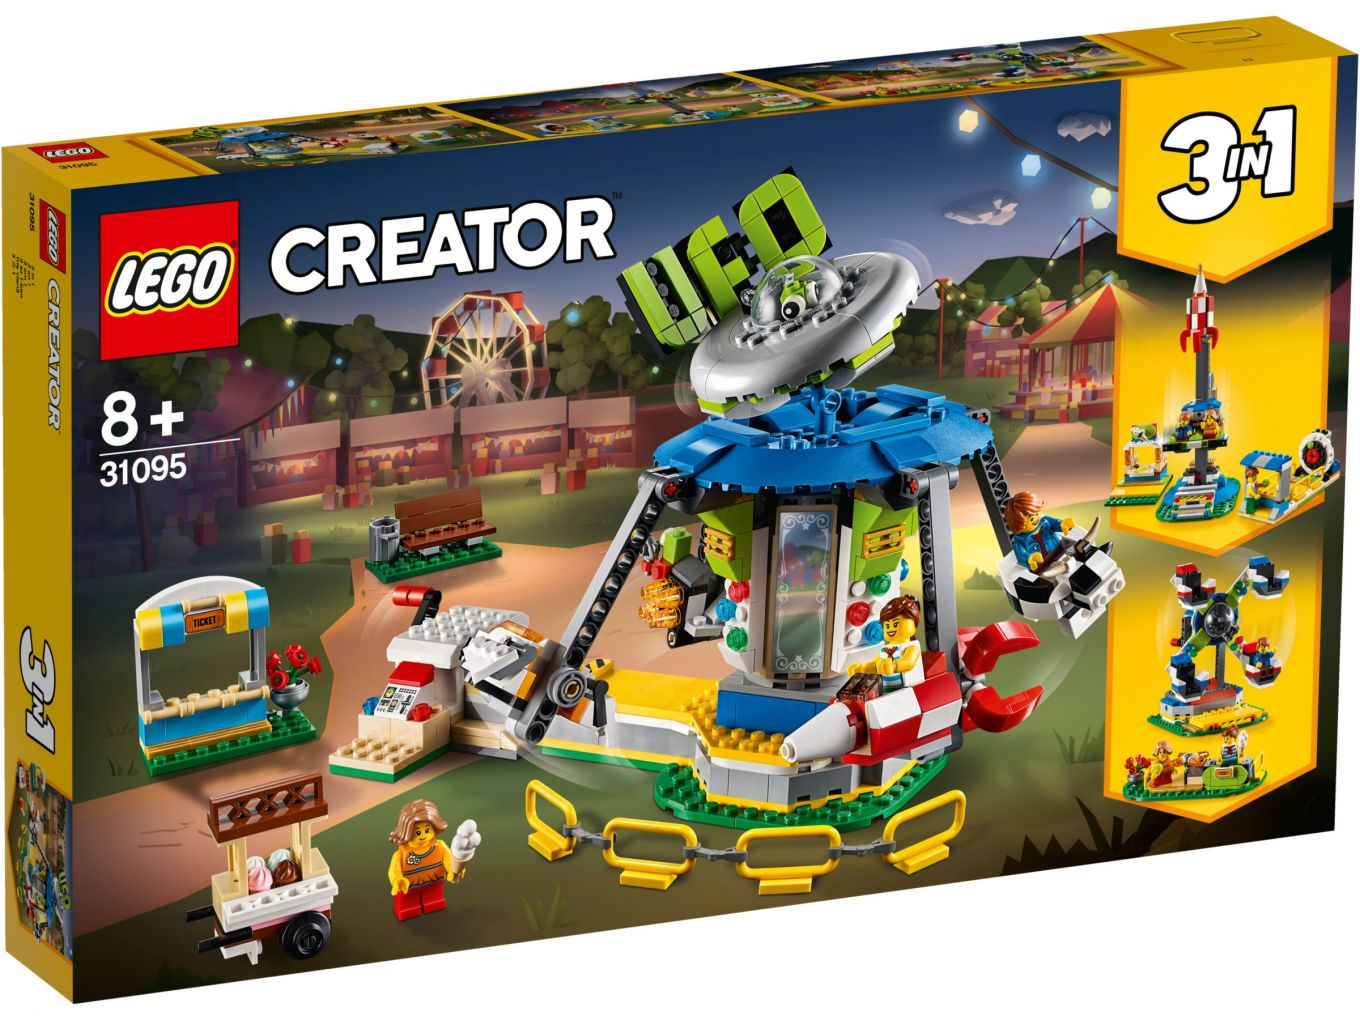 Lego Creator 31095 Carousel Box Front The Brothers Brick The